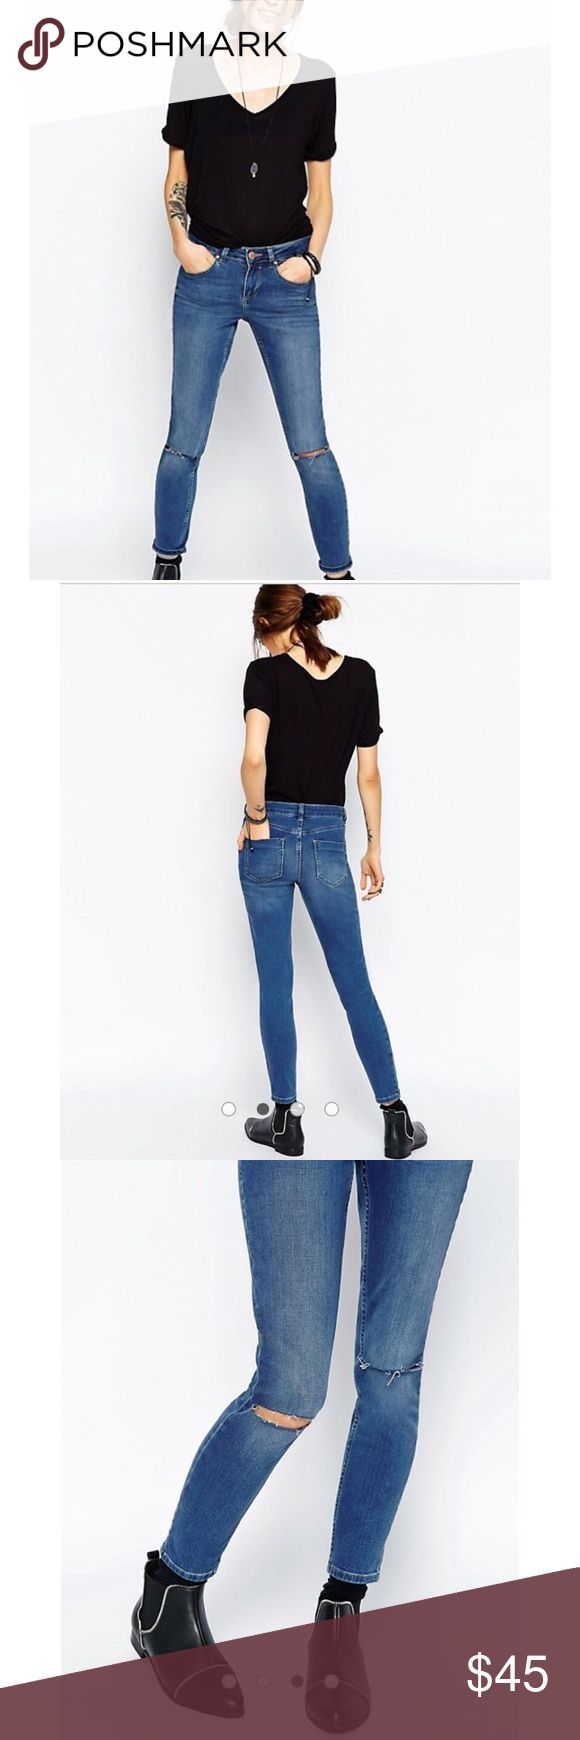 ASOS skinny ankle grazer Jean with knee rip ASOS Lisbon skinny midrise ankle grazer Jean with knee rip ASOS Jeans Ankle & Cropped